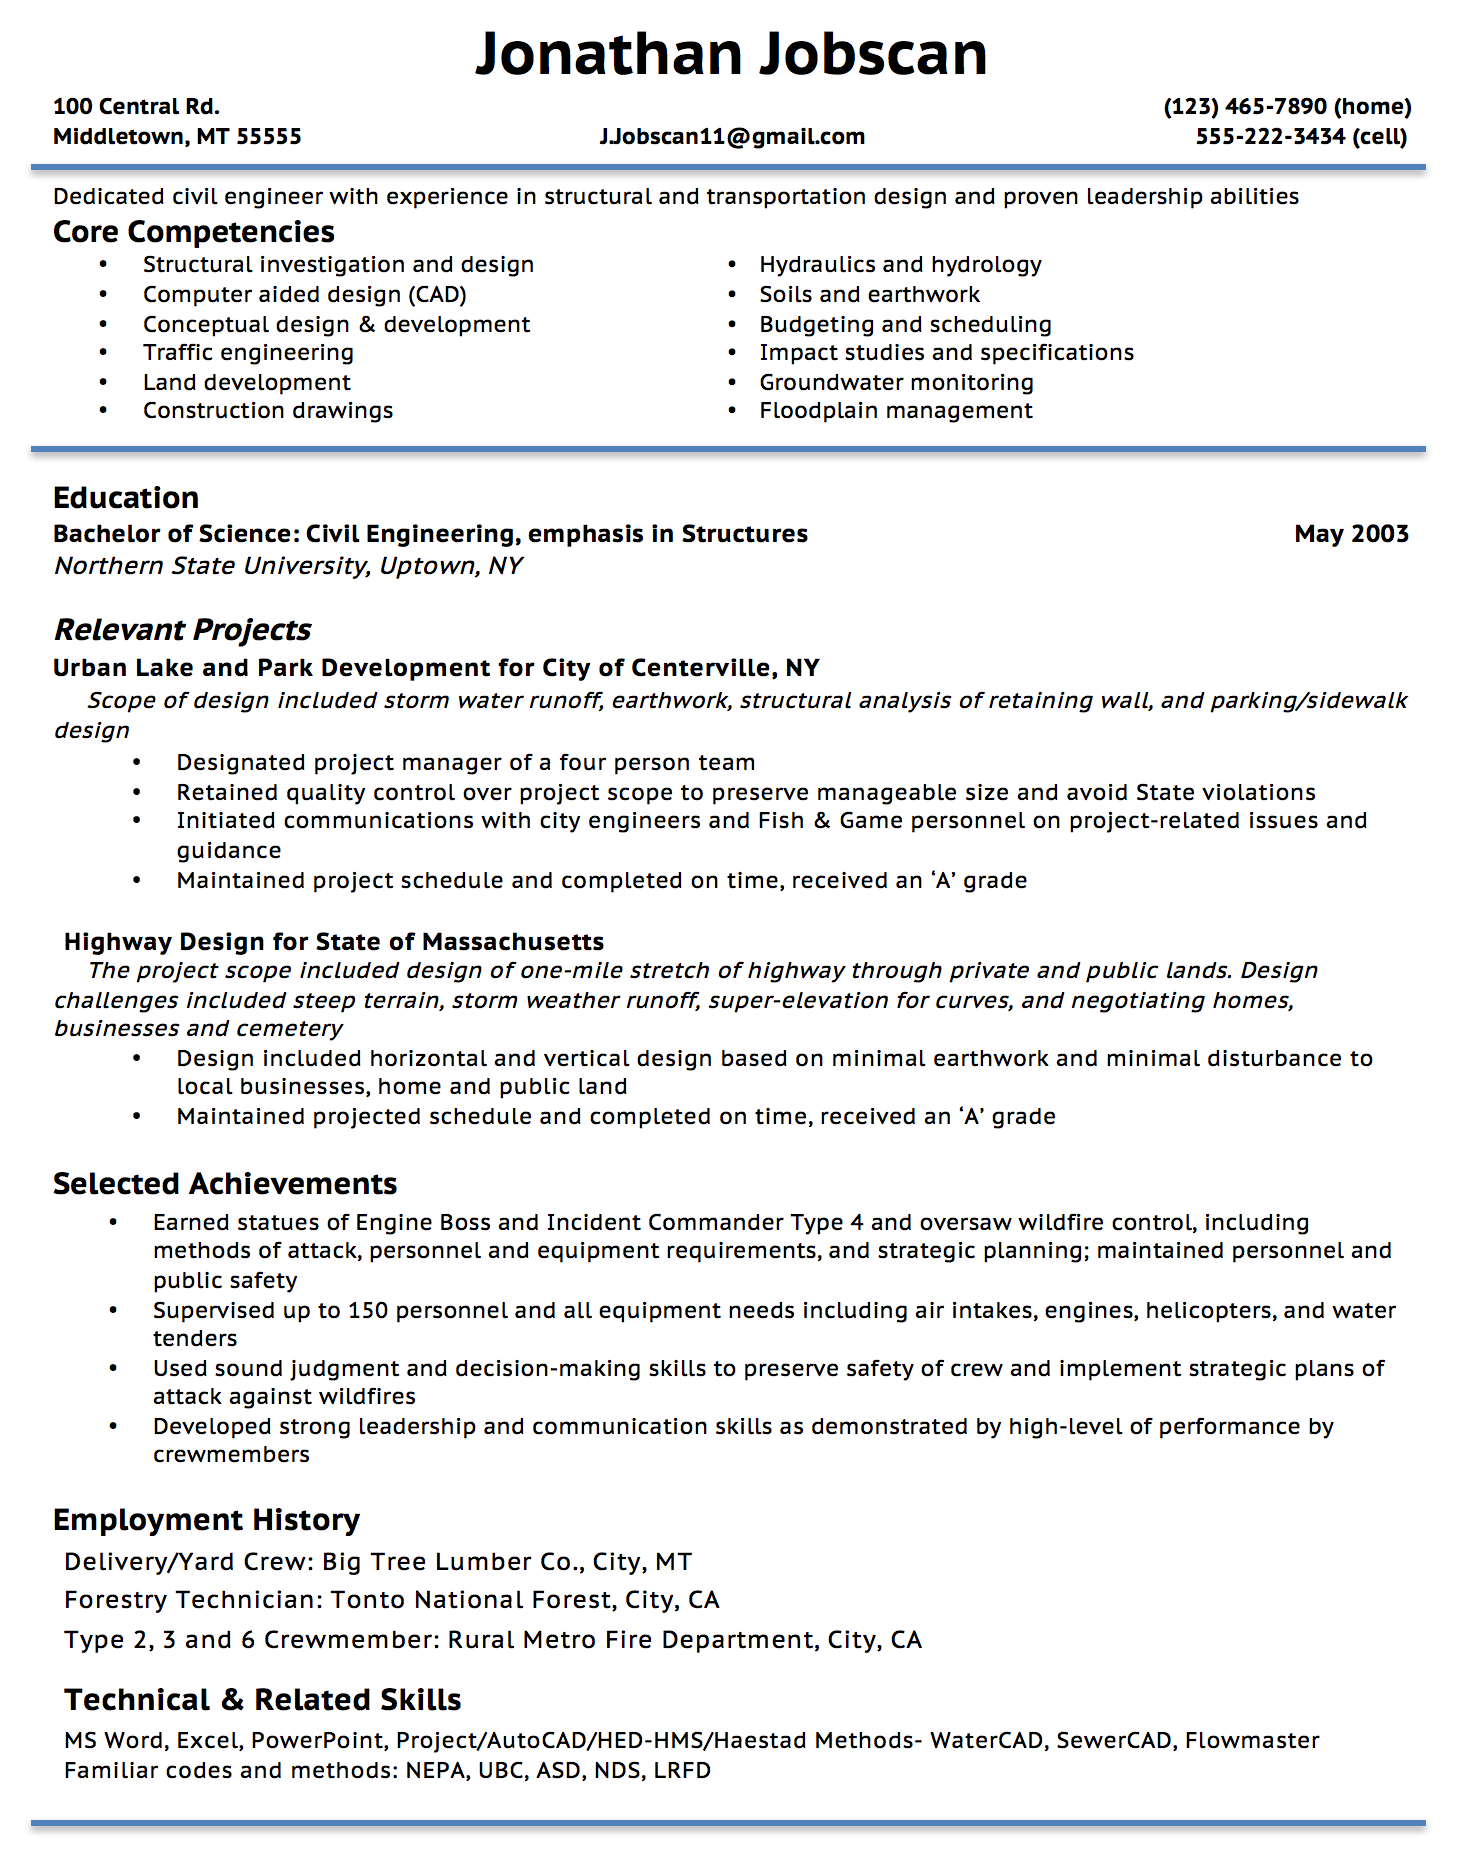 Opposenewapstandardsus  Marvellous Resume Writing Guide  Jobscan With Outstanding Example Of A Functional Resume Format With Charming Sample Resume Free Also Healthcare Resume Templates In Addition Good Summaries For Resumes And Downloadable Resume Templates Free As Well As Household Manager Resume Additionally Bioinformatics Resume From Jobscanco With Opposenewapstandardsus  Outstanding Resume Writing Guide  Jobscan With Charming Example Of A Functional Resume Format And Marvellous Sample Resume Free Also Healthcare Resume Templates In Addition Good Summaries For Resumes From Jobscanco